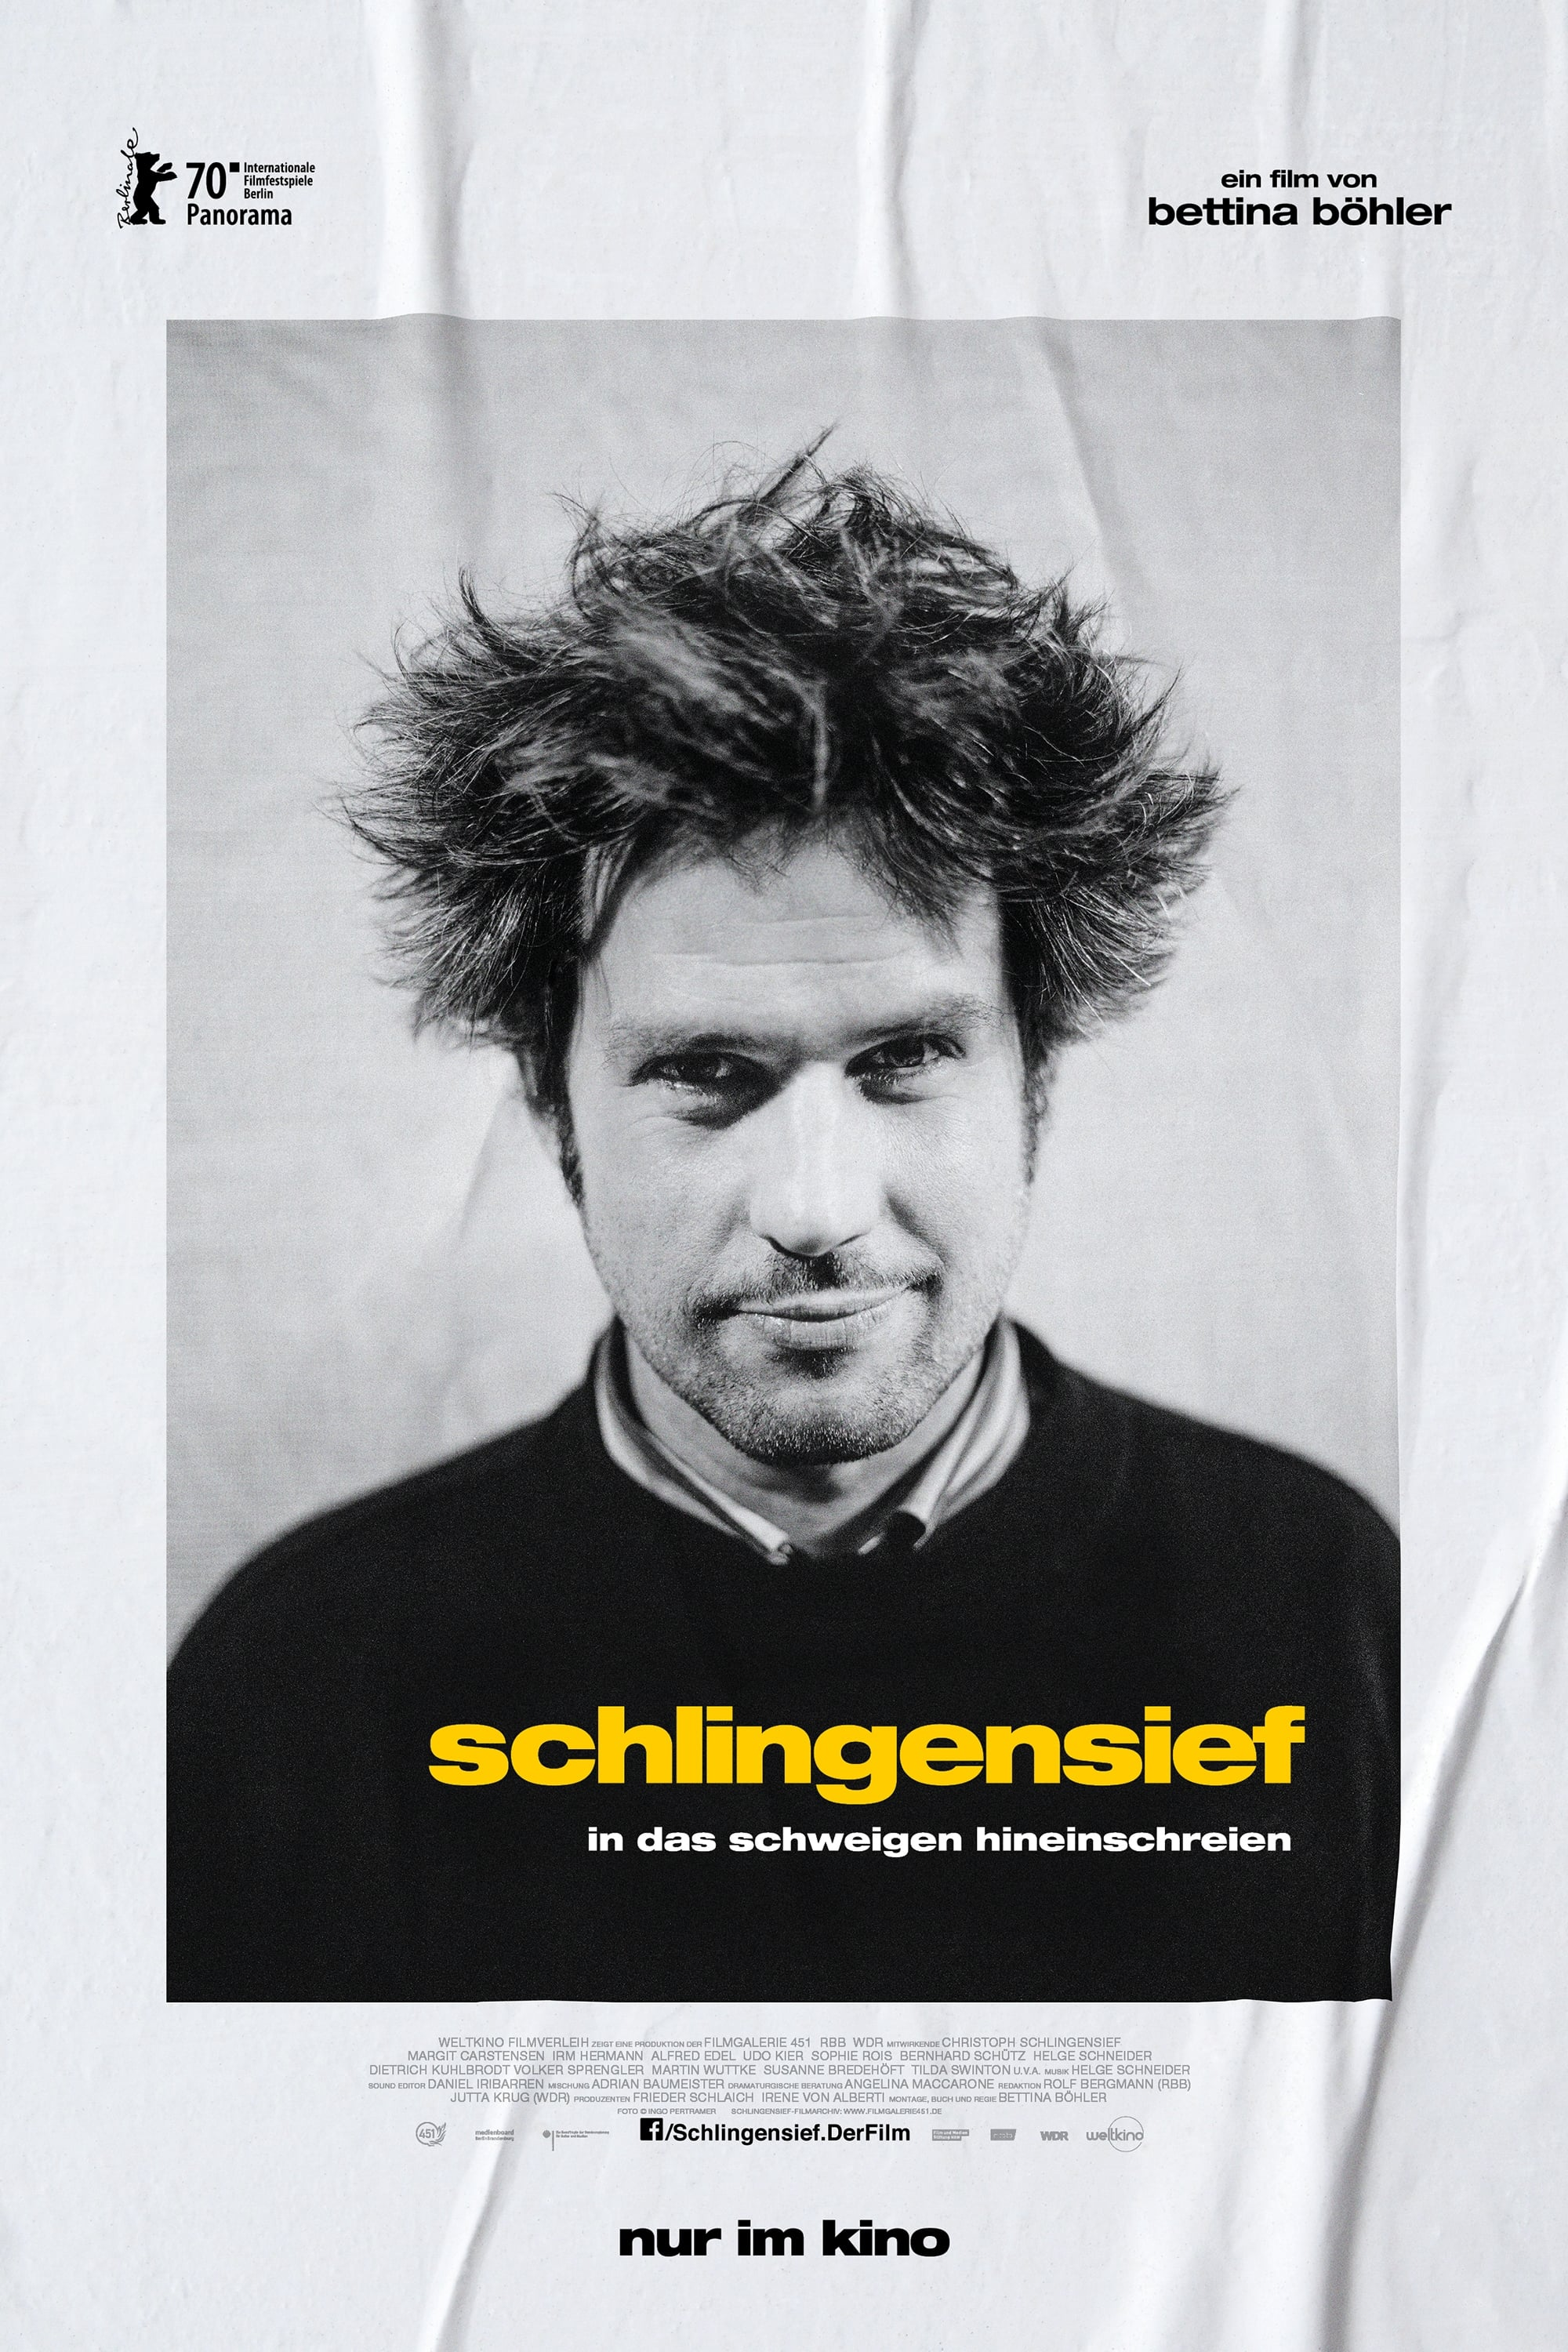 Schlingensief – A Voice That Shook the Silence